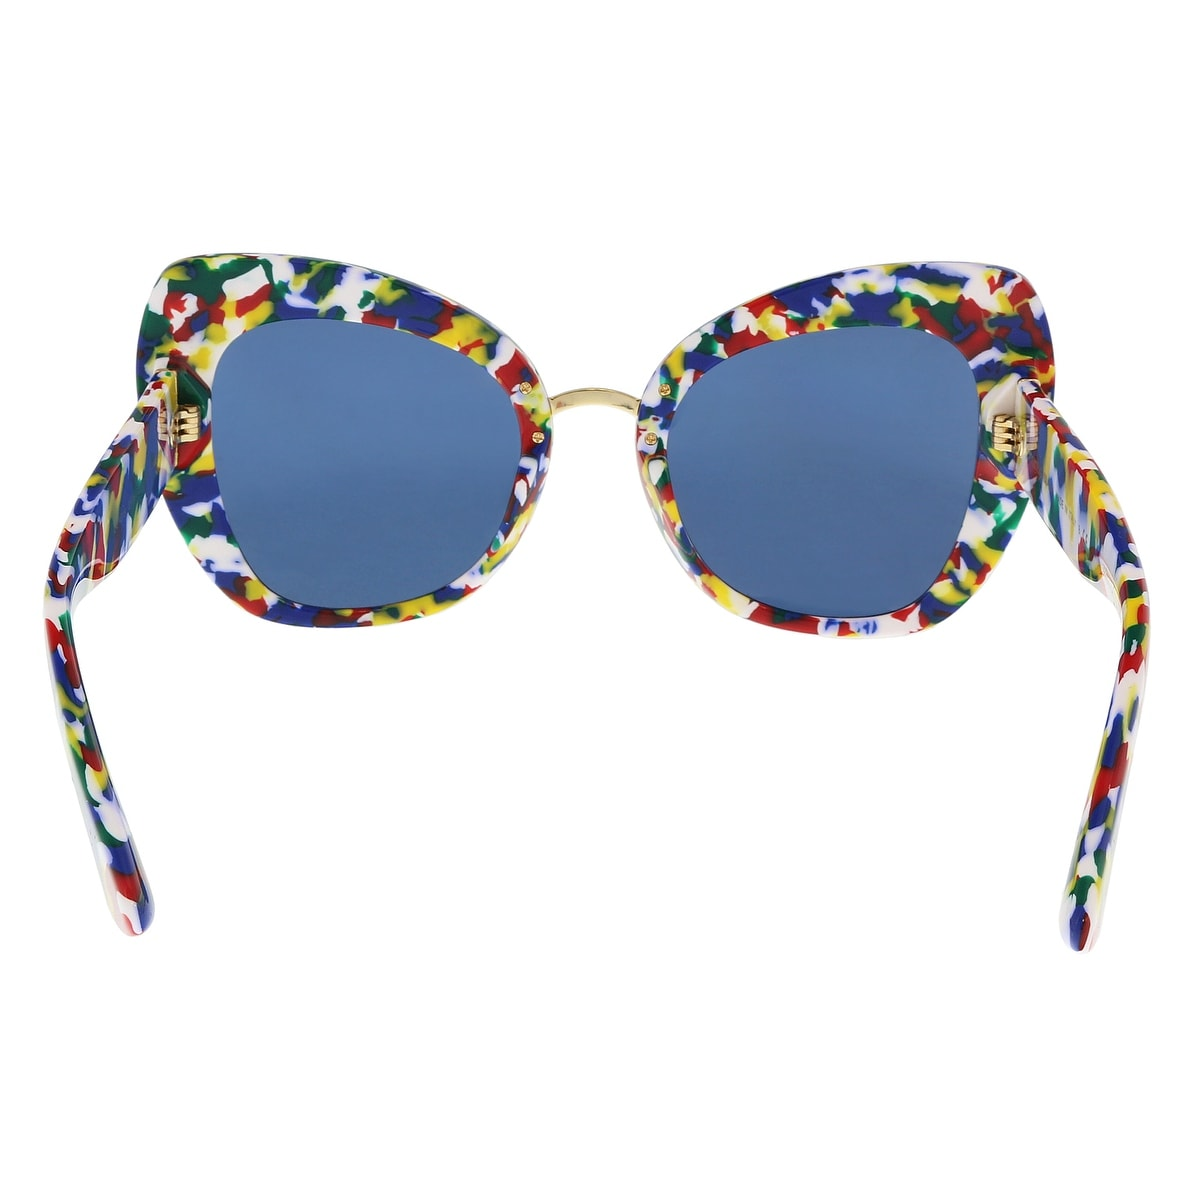 506a5373878 Shop Dolce   Gabbana DG4319 317672 Multicolor Cube Cat Eye Sunglasses -  Multi - 51-22-140 - Free Shipping Today - Overstock - 21157792